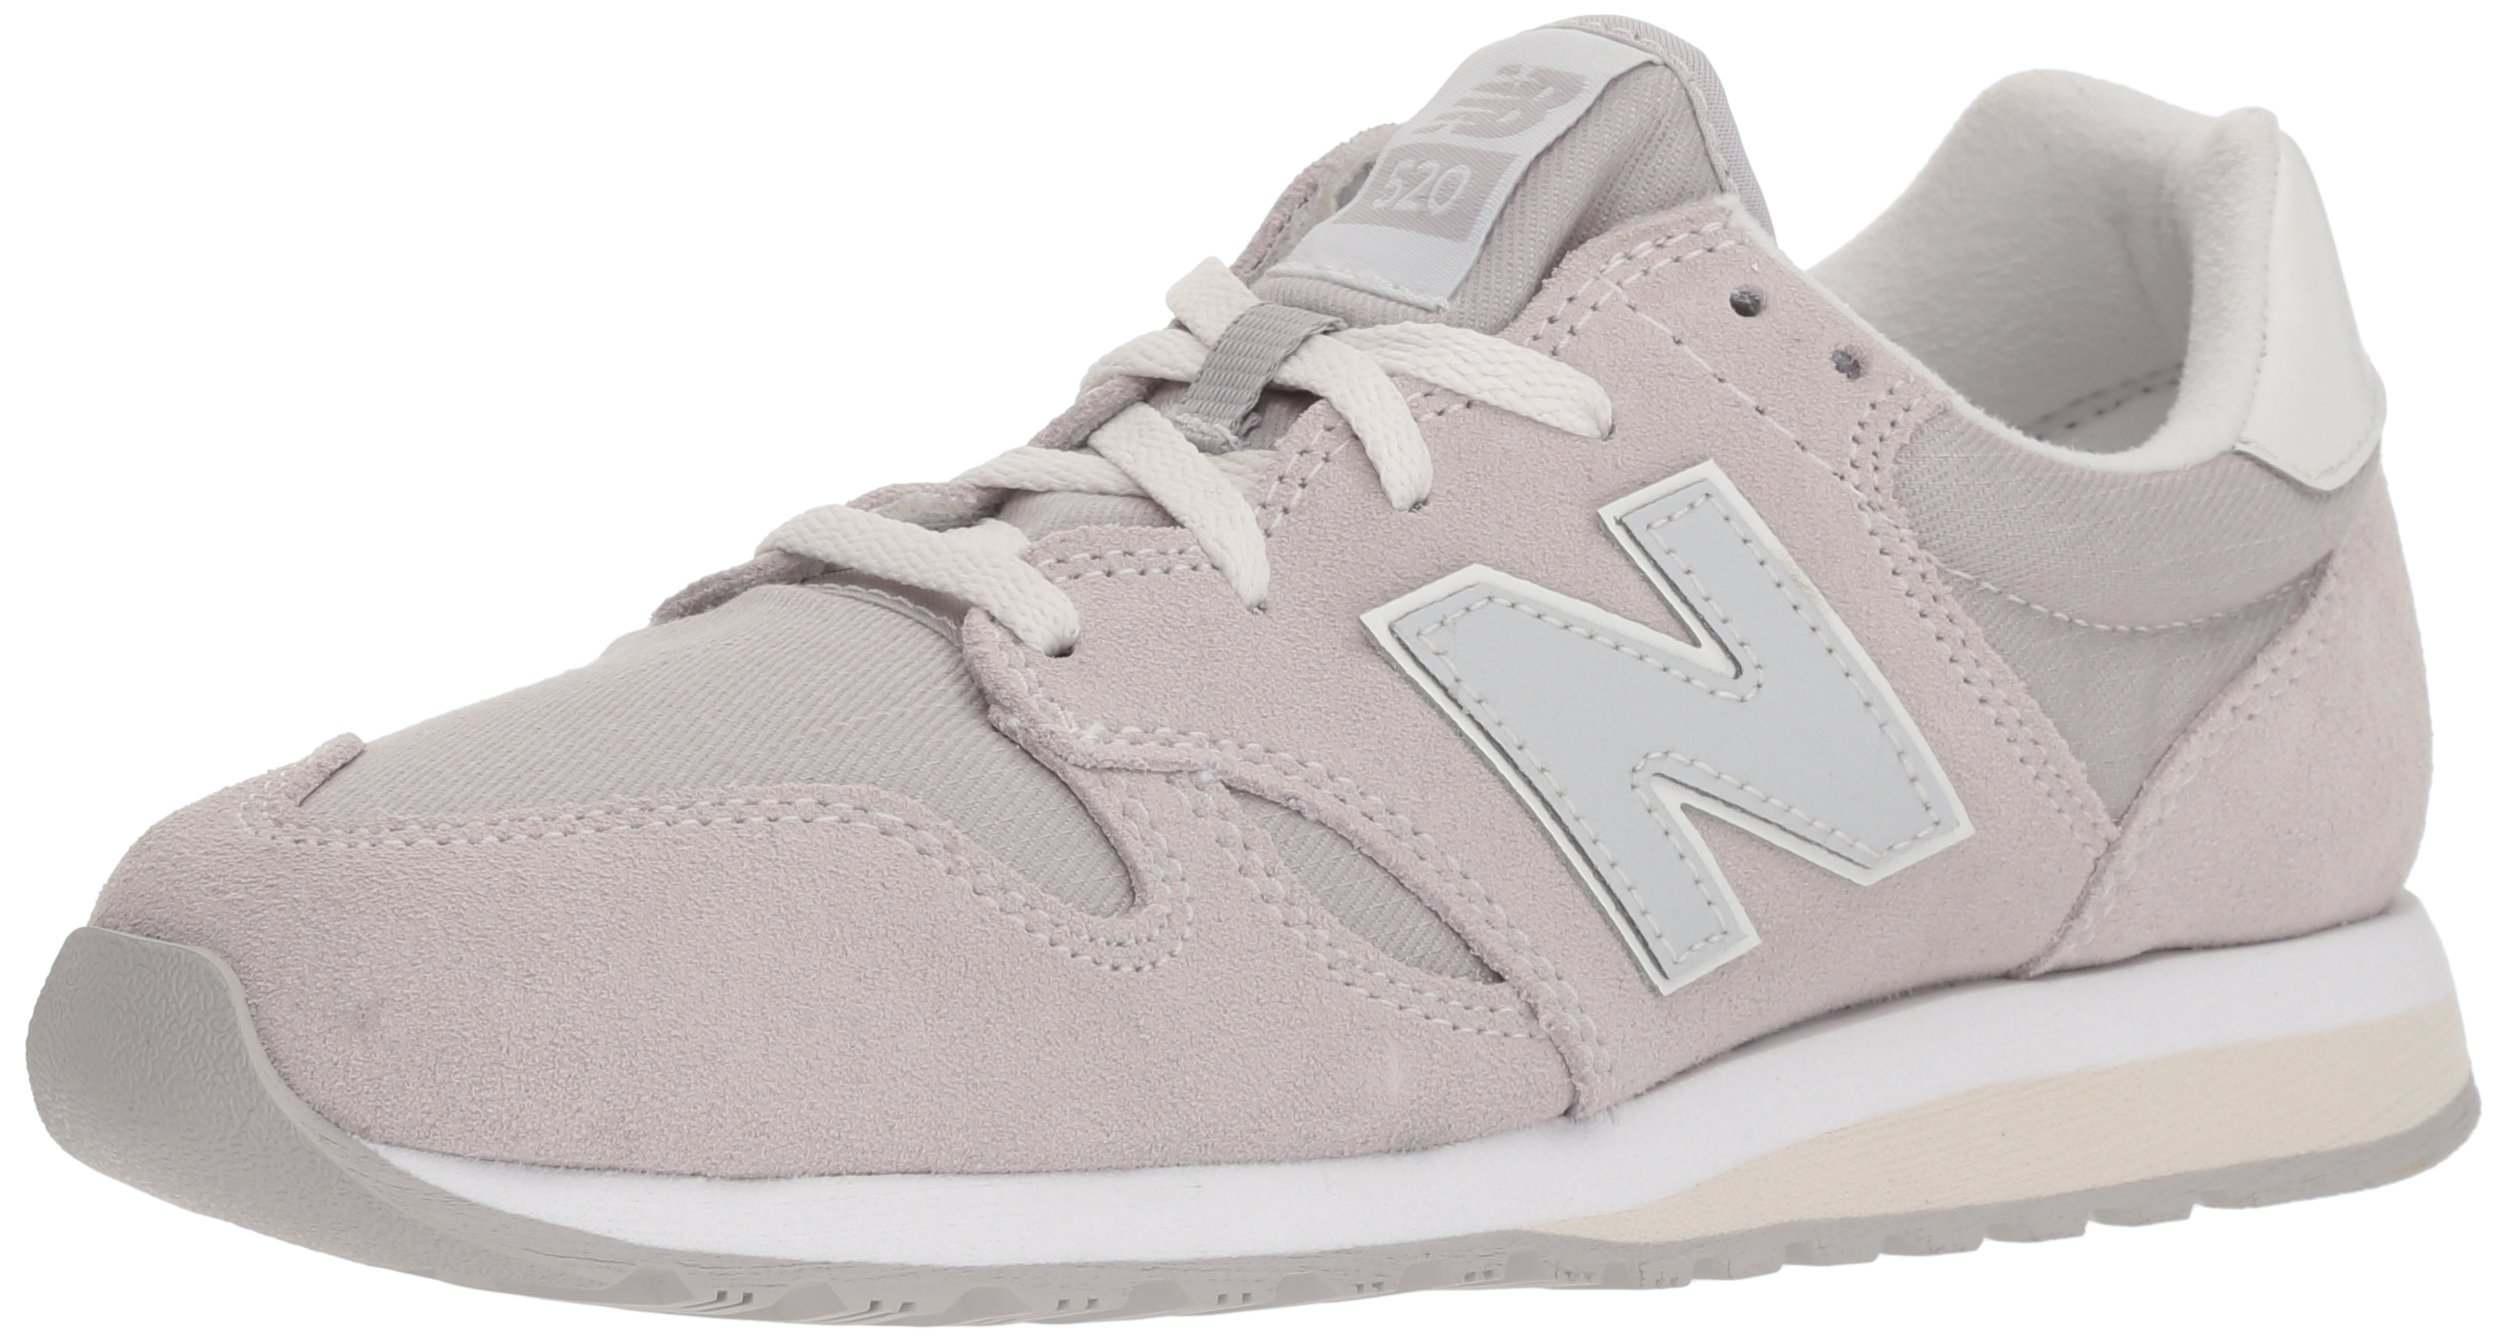 New Balance Women's 520v1 Sneaker, Overcast/Nimbus Cloud, 11.5 B US